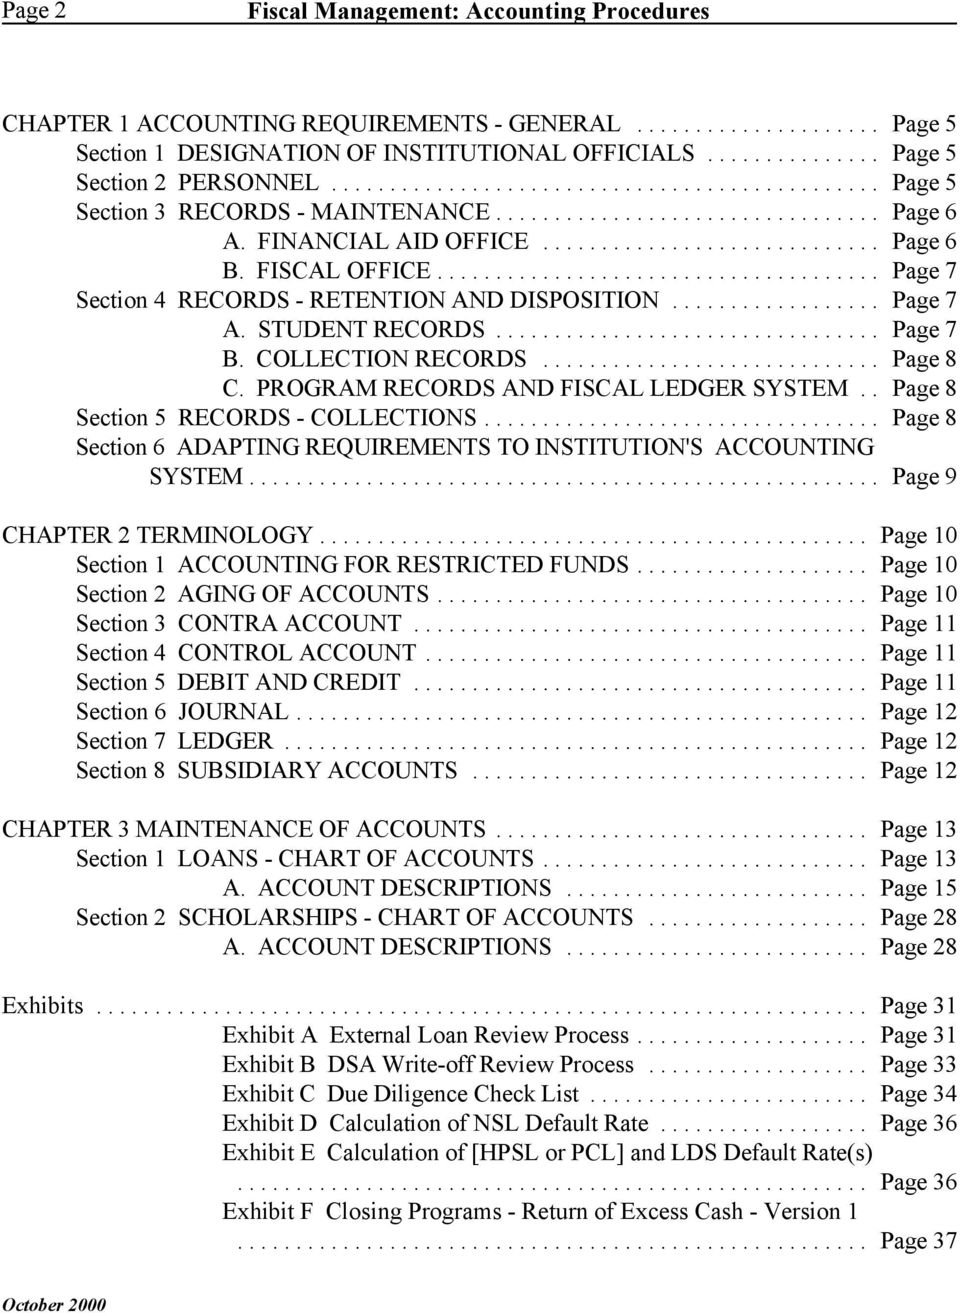 COLLECTION RECORDS... Page 8 C. PROGRAM RECORDS AND FISCAL LEDGER SYSTEM.. Page 8 Section 5 RECORDS - COLLECTIONS... Page 8 Section 6 ADAPTING REQUIREMENTS TO INSTITUTION'S ACCOUNTING SYSTEM.